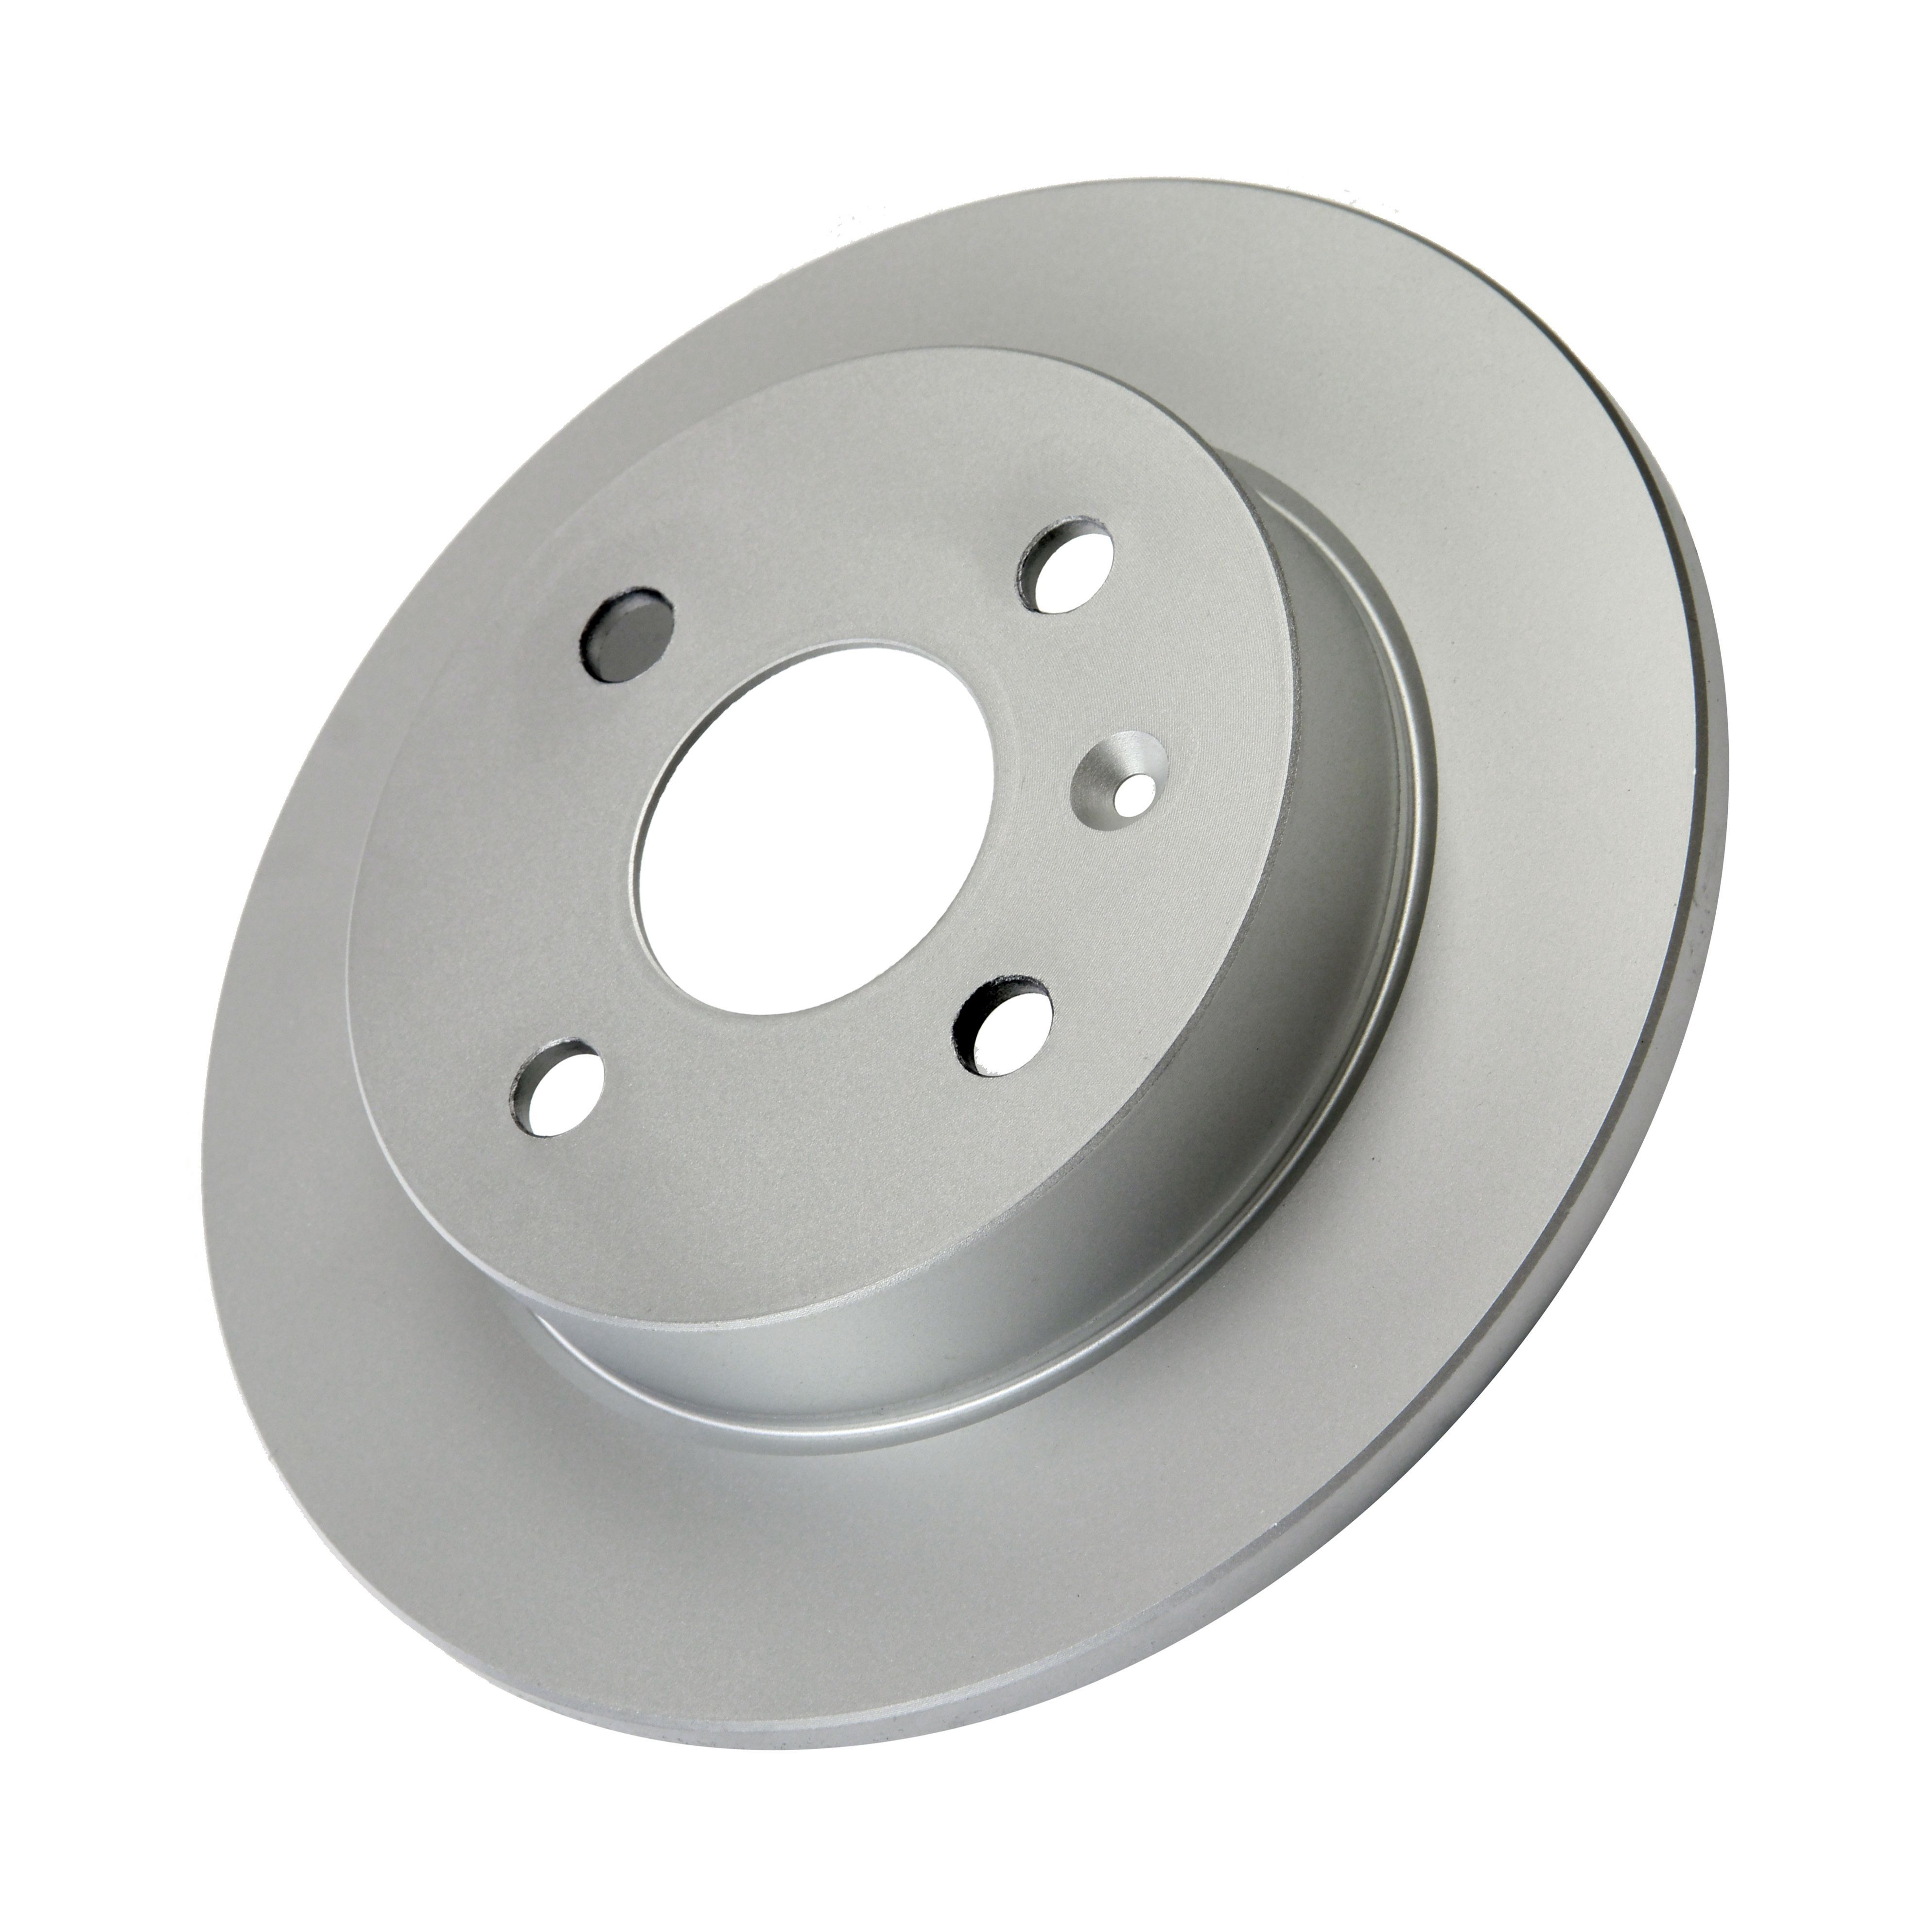 Eicher YH1389 Rear Right Left Brake Disc Kit 2 Pieces 240mm Diameter Solid